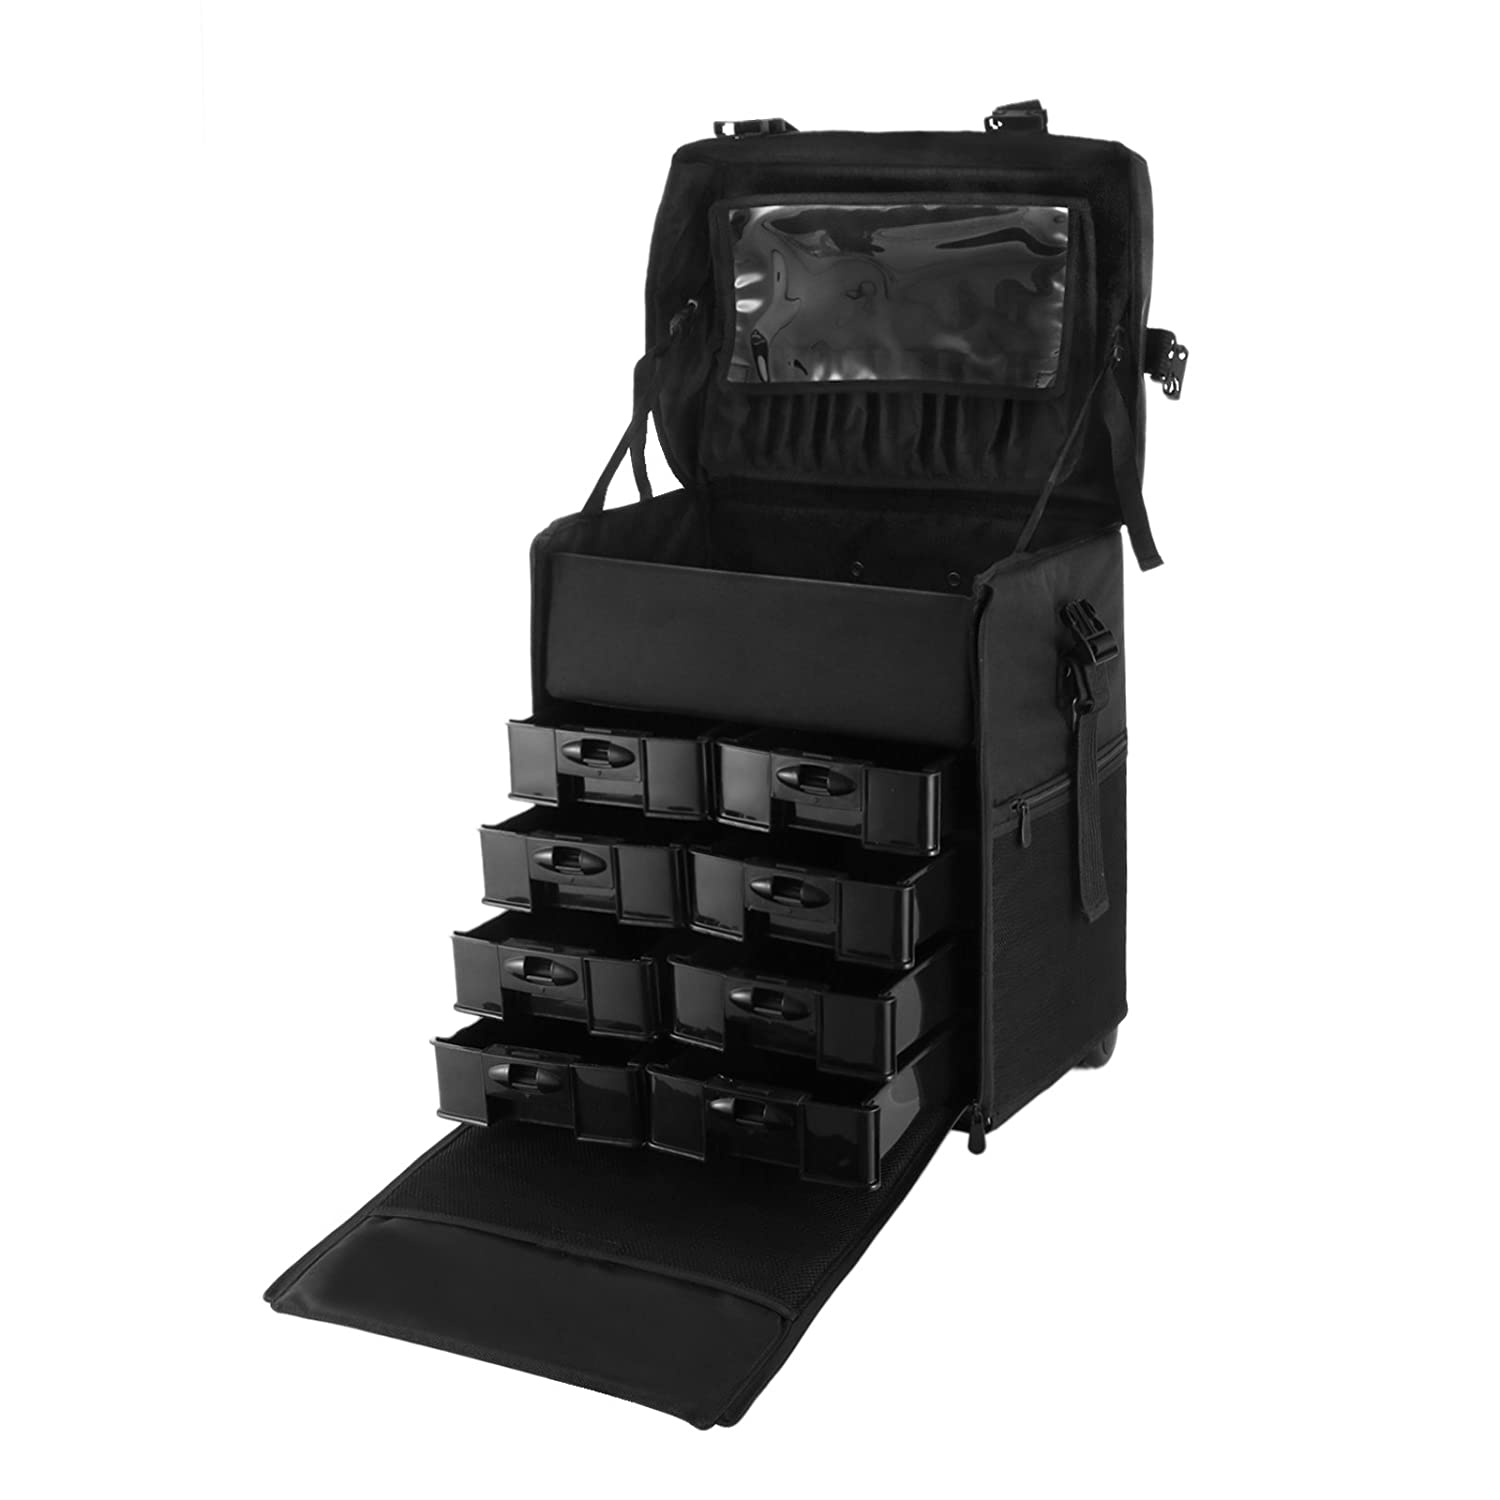 OrangeA 2 in 1 Makeup Case Black Nylon Makeup Case Professional Makeup Artist Rolling Trolley with Multiple Compartments and Lift Handle for Travel Cases (2 in 1 makeup case)